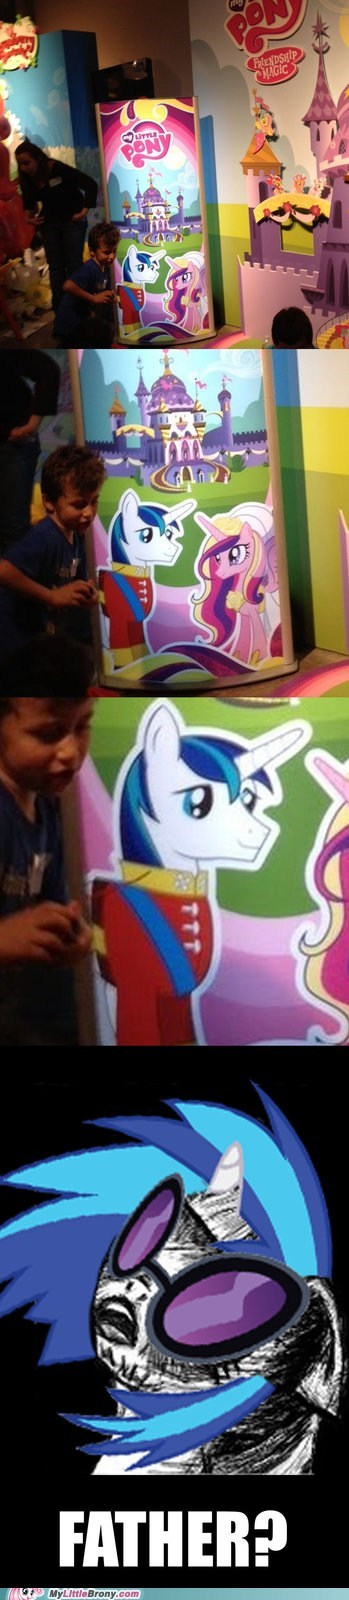 dj PON-3 Father IRL where is this - 5543285248